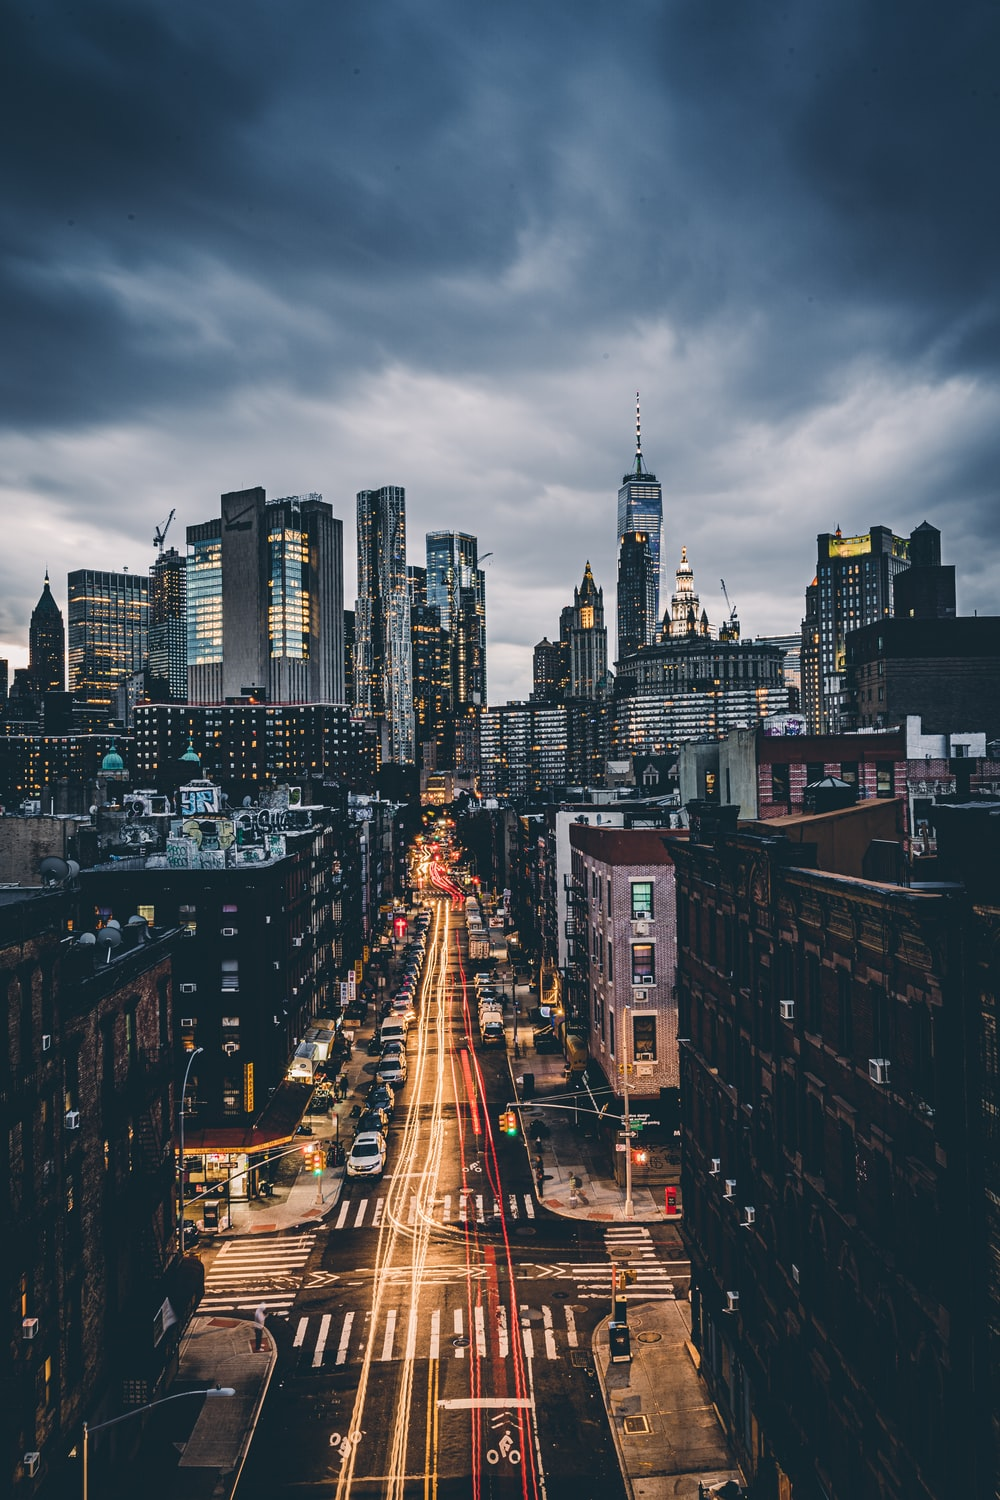 12+ Urban Iphone Wallpaper Pictures   Download Free Images on ...